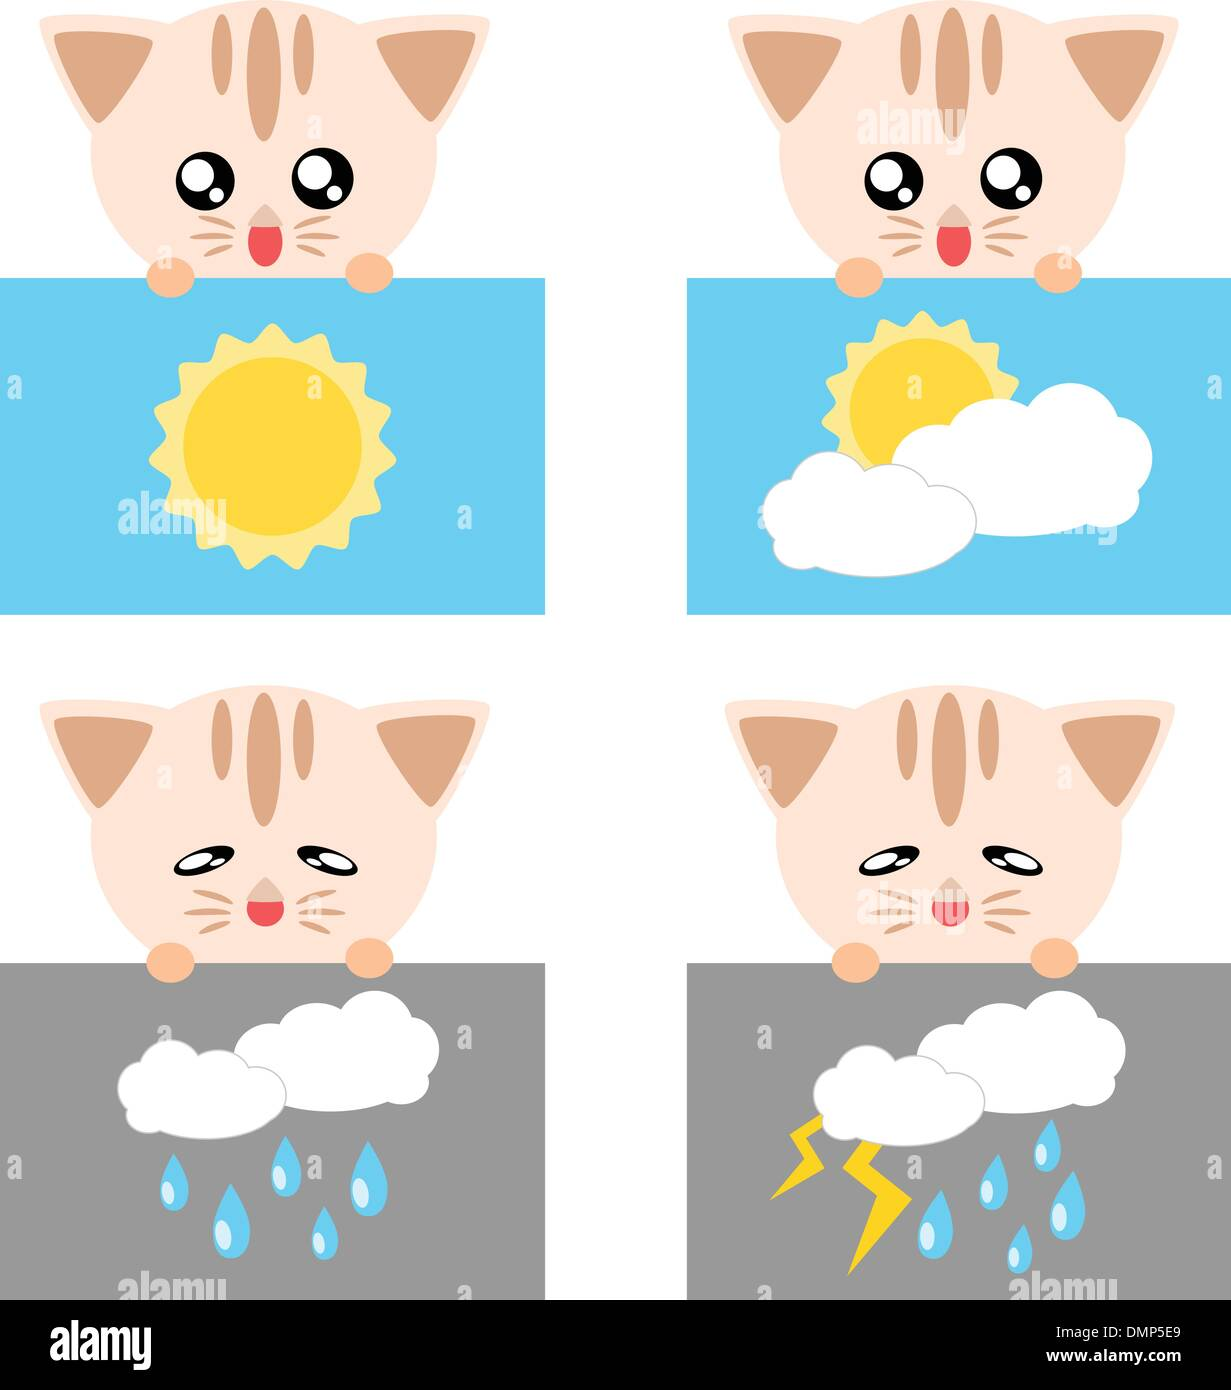 Paper cat weather icon illustration - Stock Vector